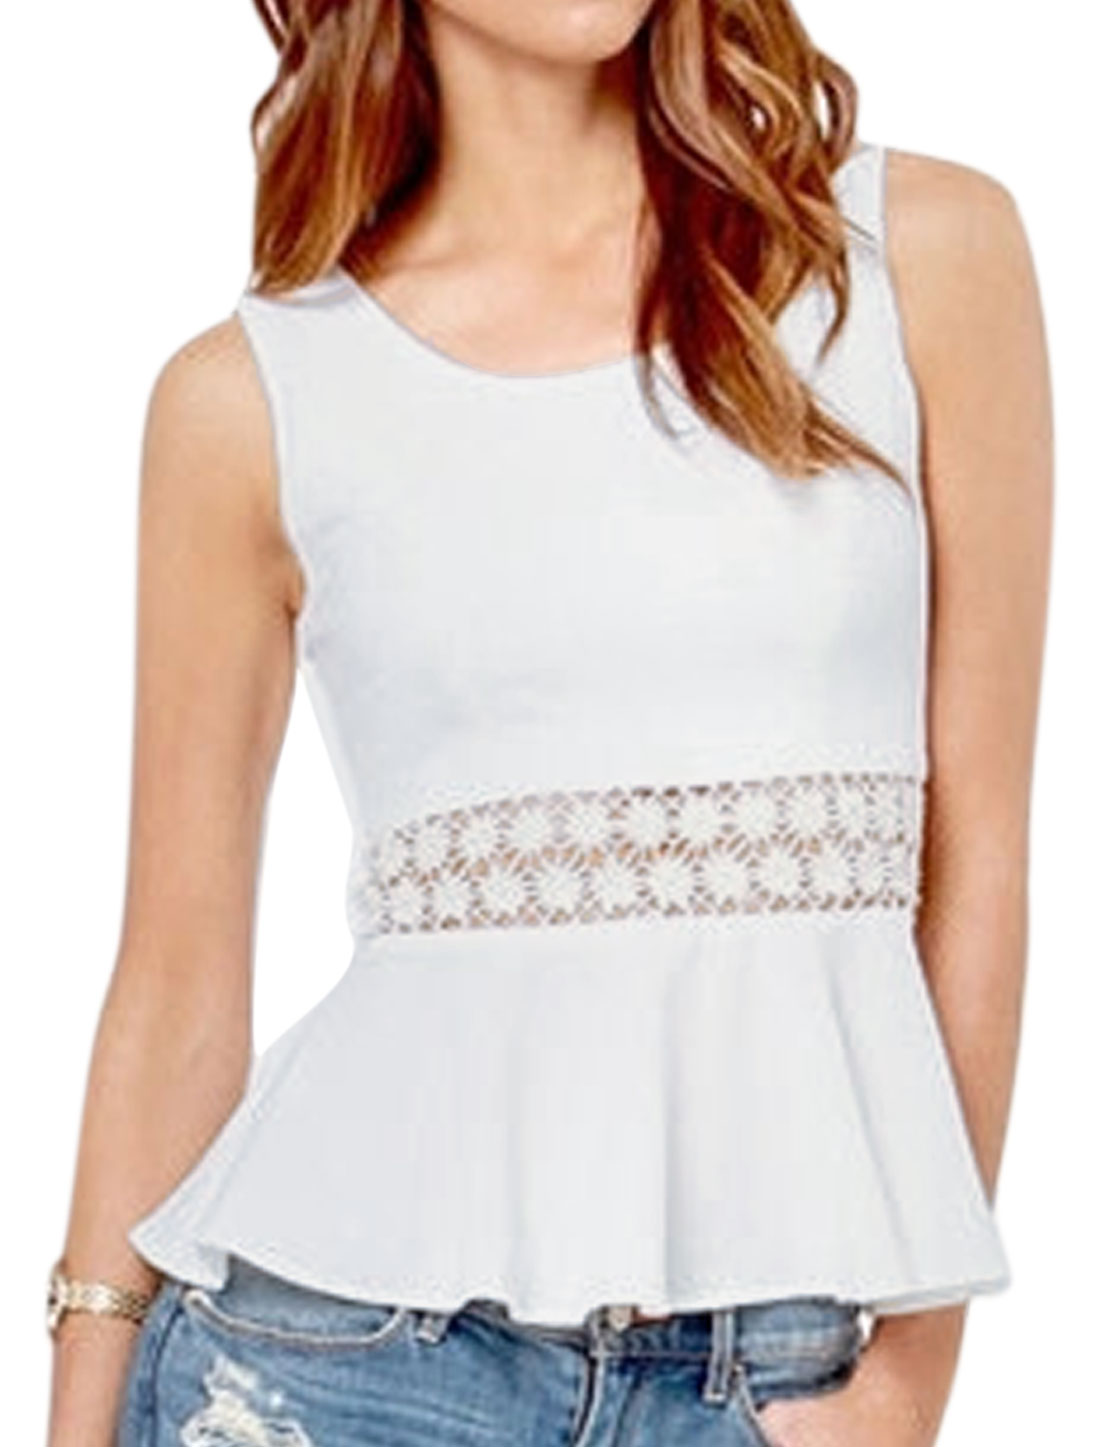 Ladies Round Neck Sleeveless Crochet Slipover Peplum Tops White XS